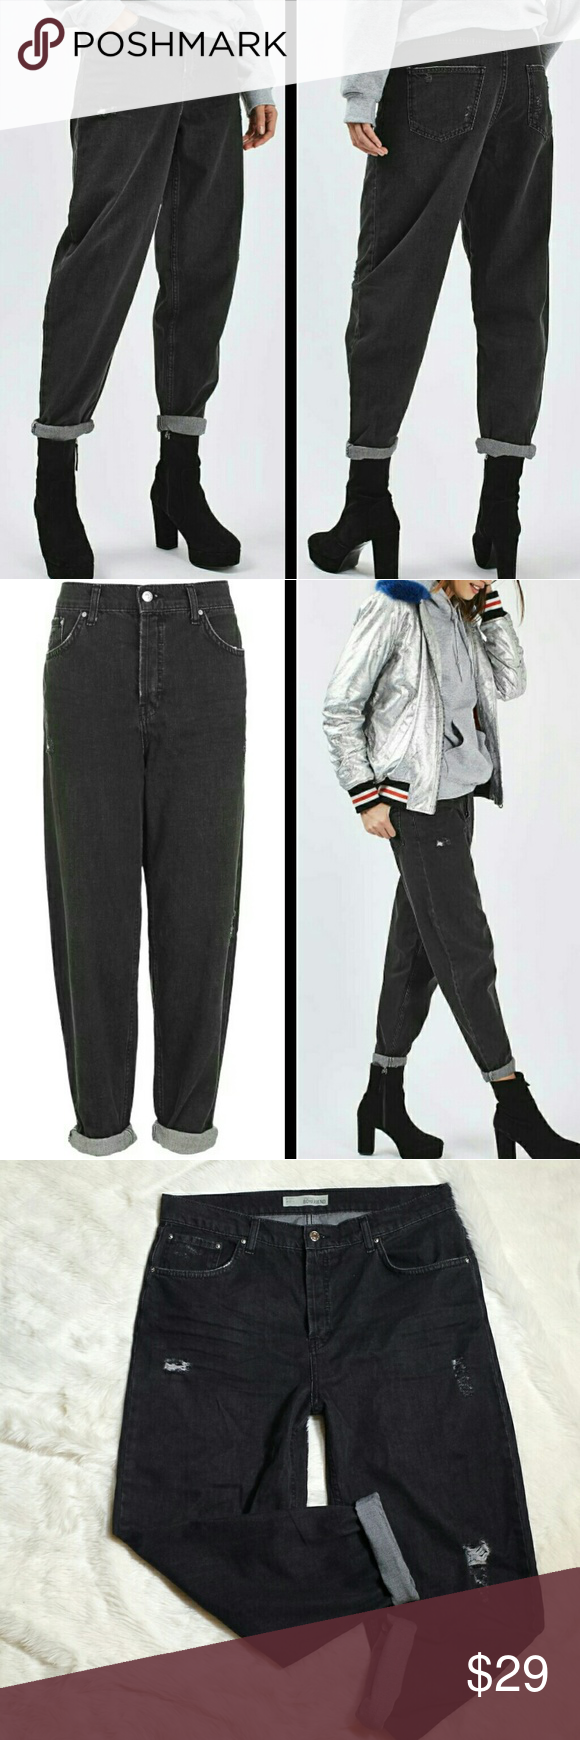 """Topshop Moto Boyfriend Oversized Jeans Size 32 NWT Topshop Moto Boyfriend Oversized Jeans, size 32. Borrow a look from the boys in these boyfriend style jeans. Cut in an oversized, baggy fit, they come in a washed black super soft denim with rolled hems. Wear with heeled ankle boots for a girlie touch. 100% Cotton. Factory destroyed look. High rise provides extra coverage. Style #02Z04JWBK. New with tags.  Measurements  Waist 18"""" Rise 12.5"""" Inseam 32"""" Leg opening 6"""" Topshop Jeans Boyfriend"""